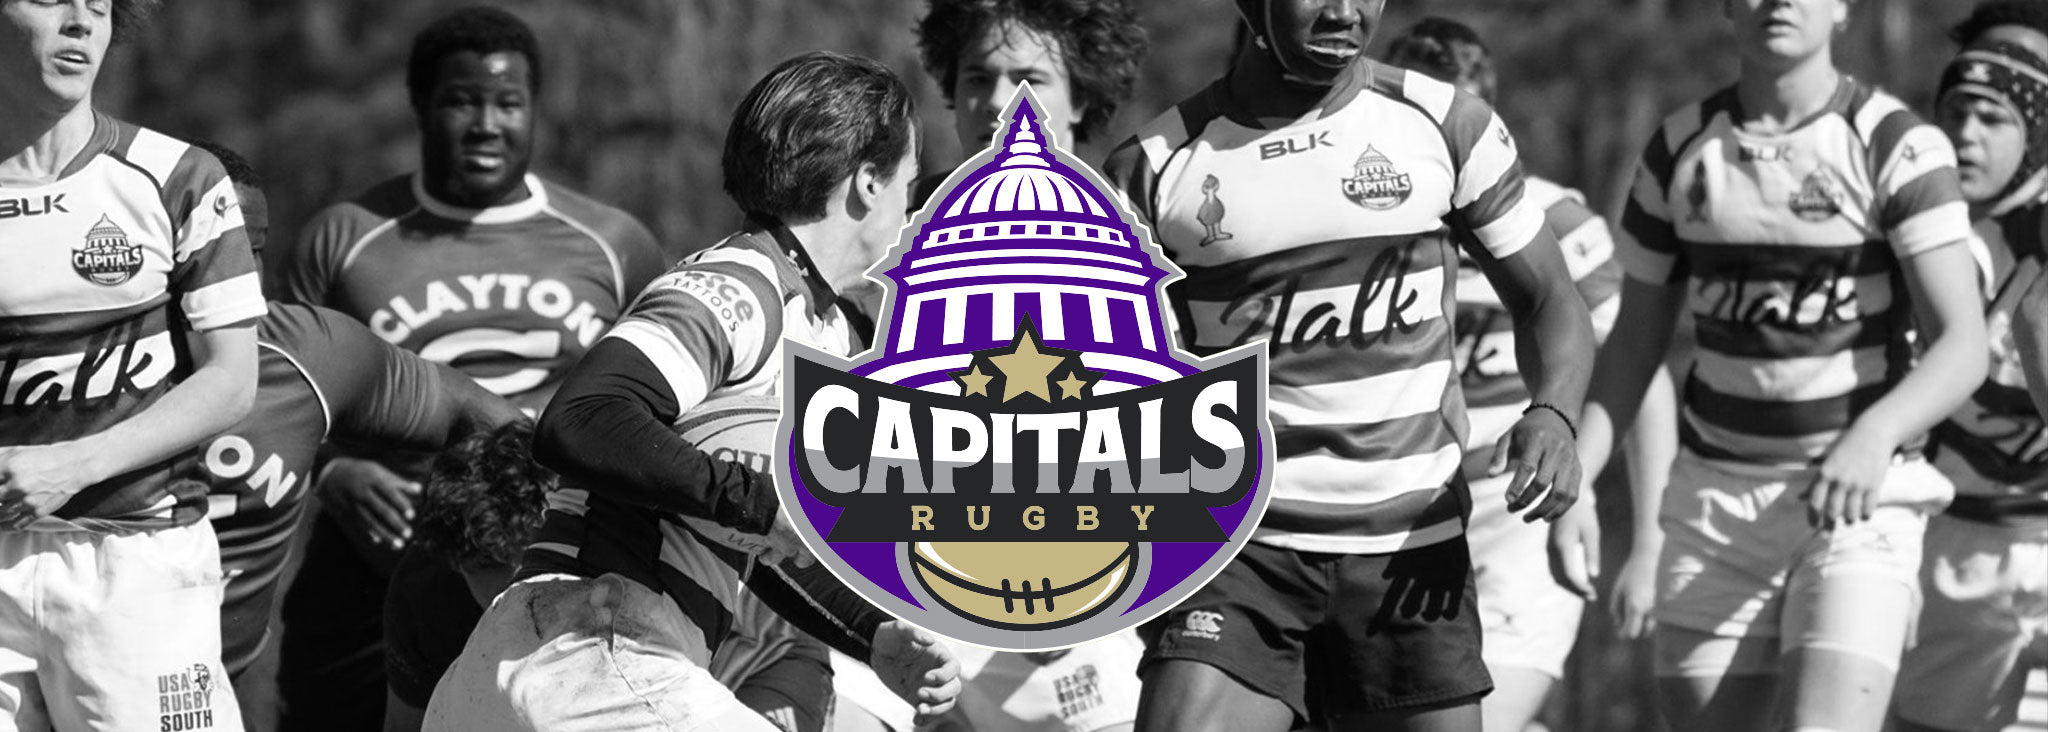 Capitals Rugby NC